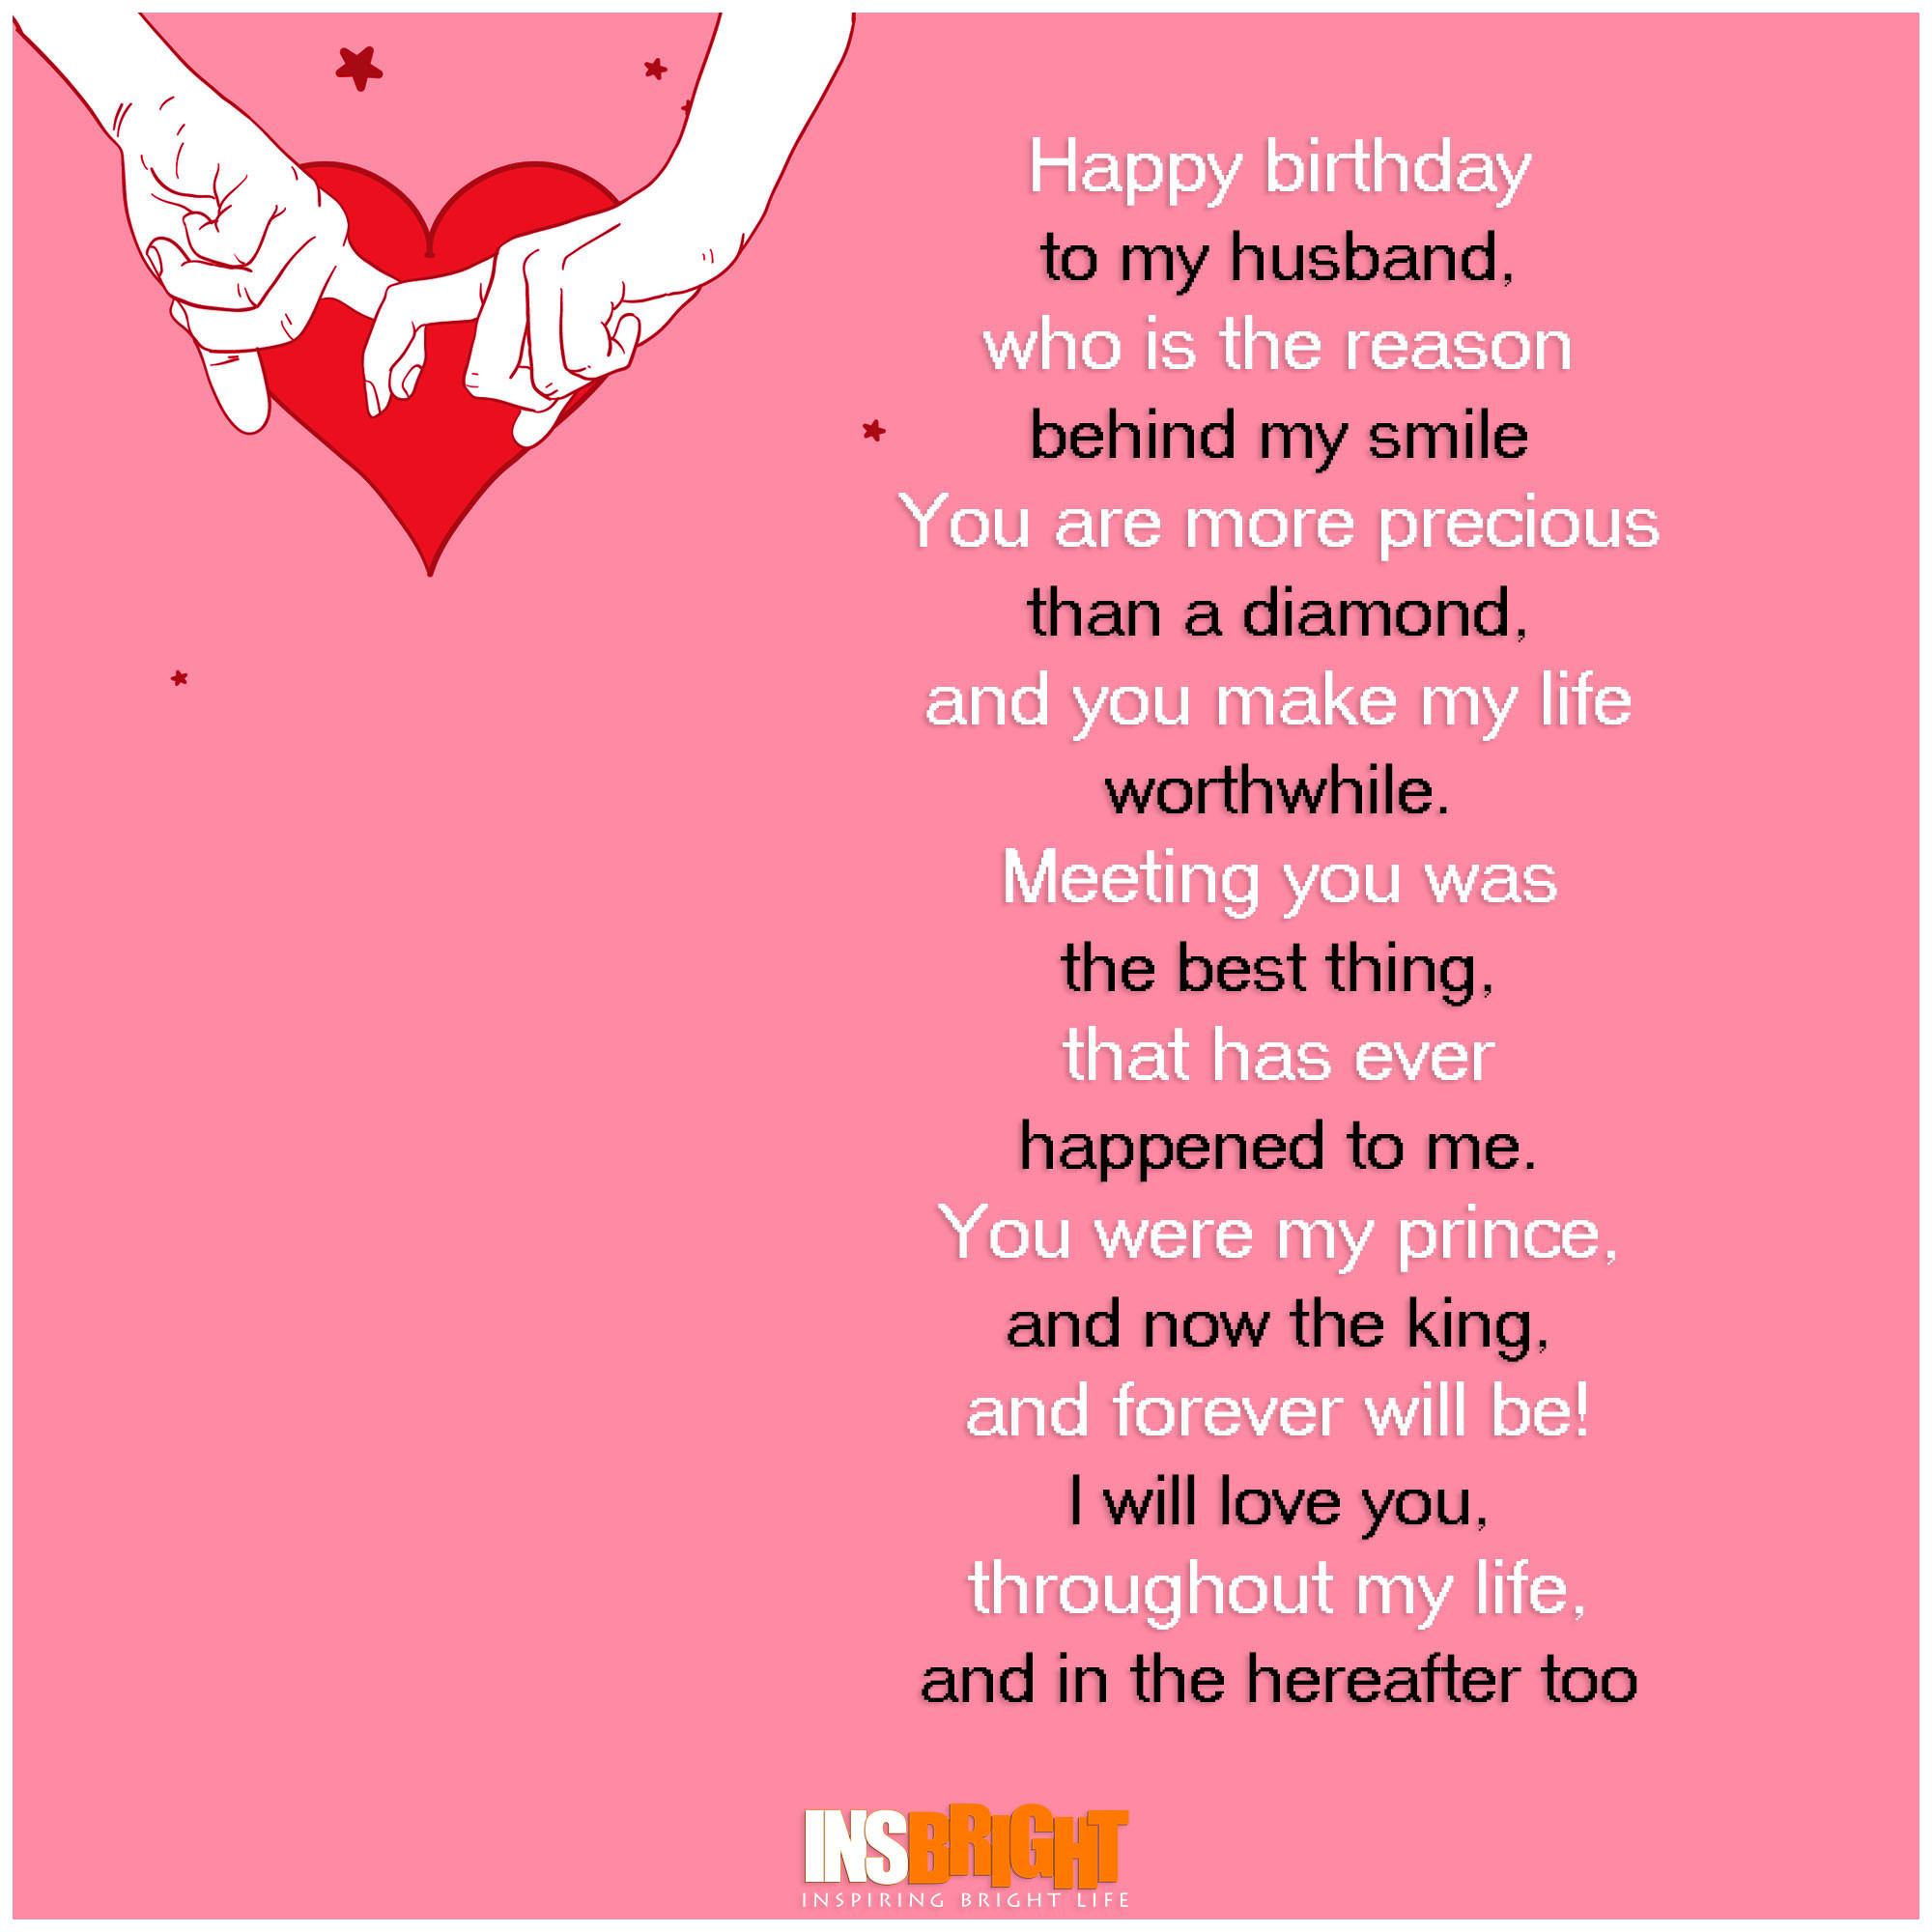 Best ideas about Husband Birthday Quotes . Save or Pin Romantic Happy Birthday Poems For Husband From Wife Now.